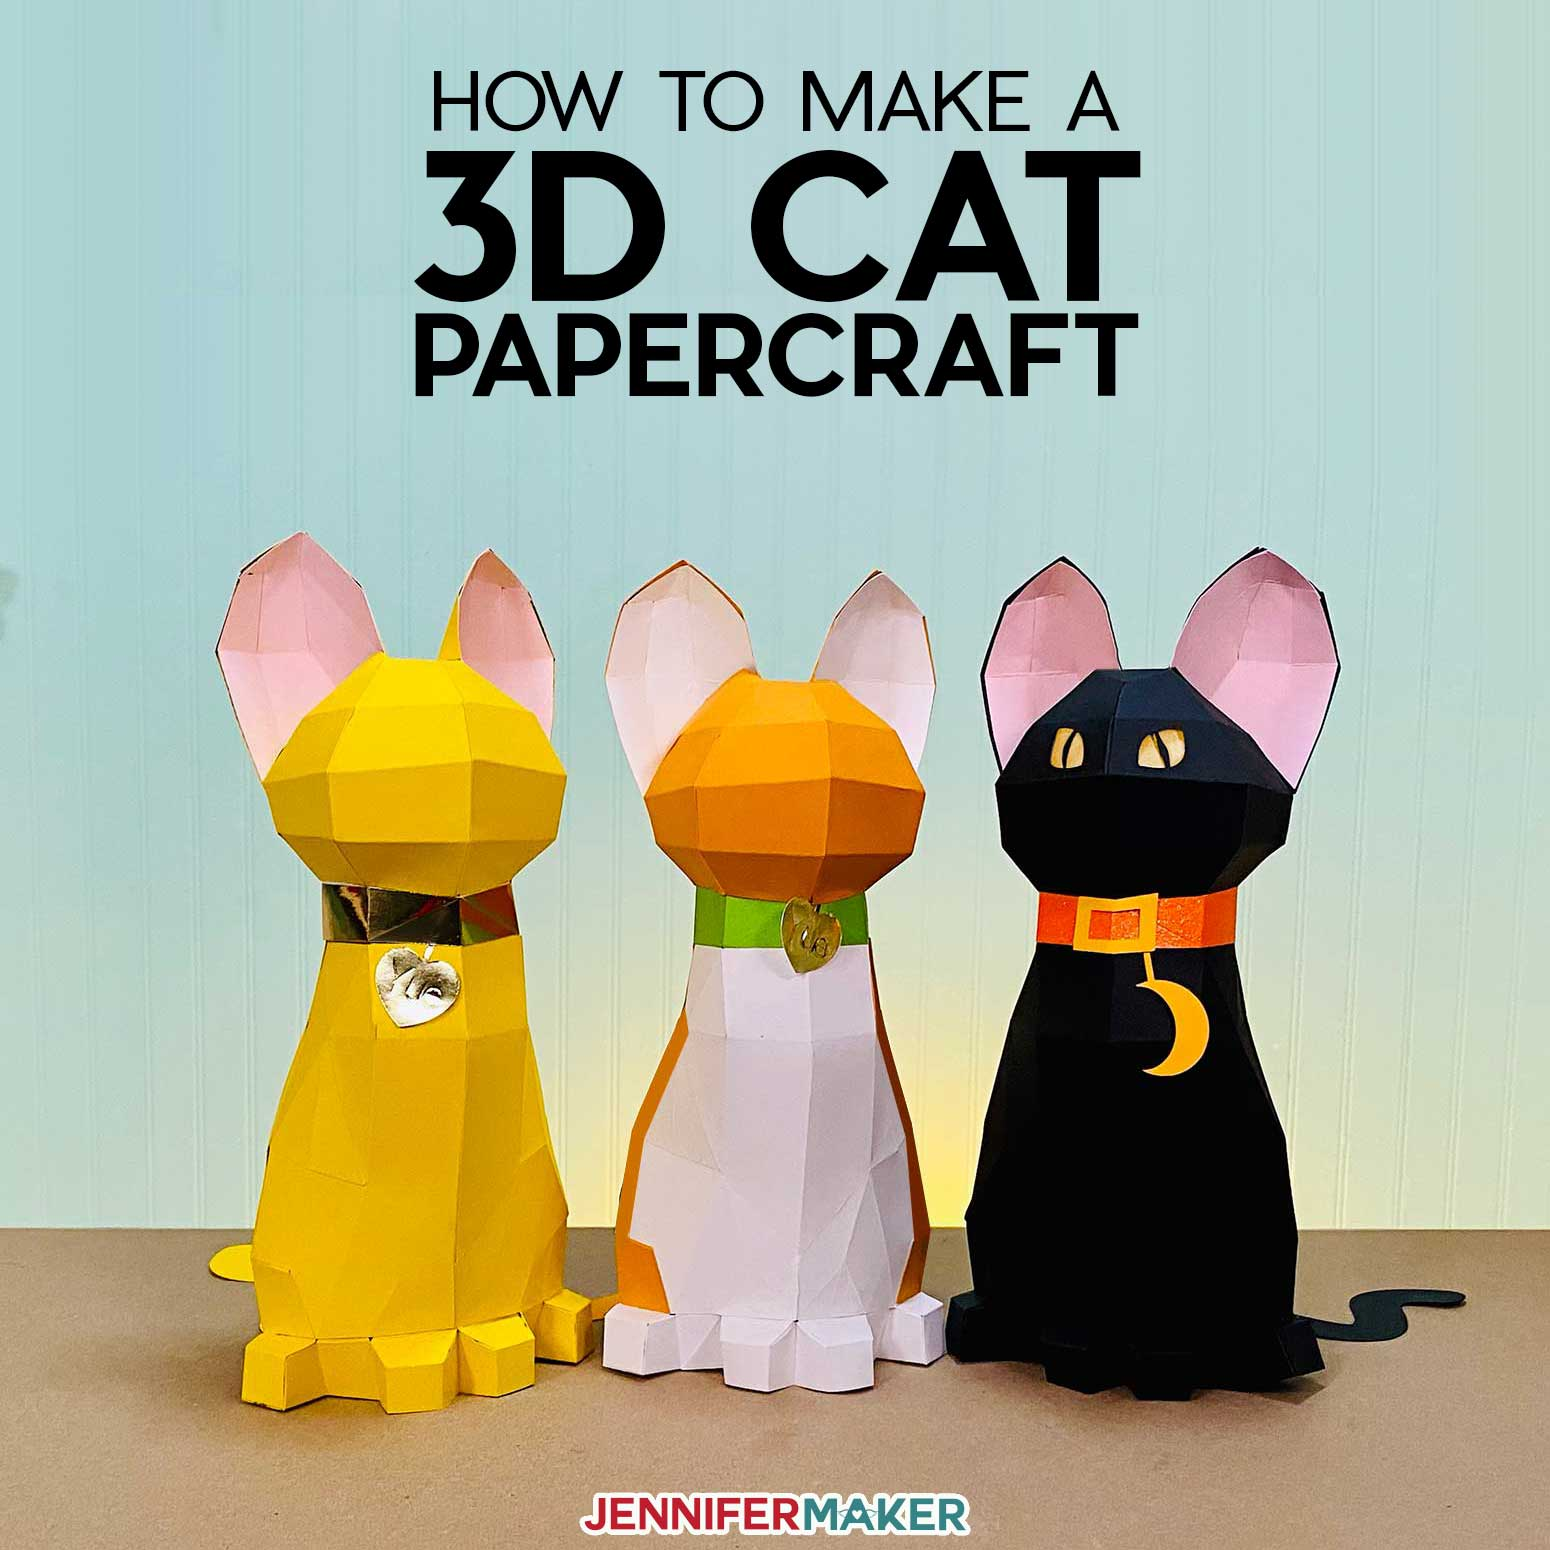 3D Papercraft Cats cut on the Cricut cutting machine - free SVG cut file and printable pattern